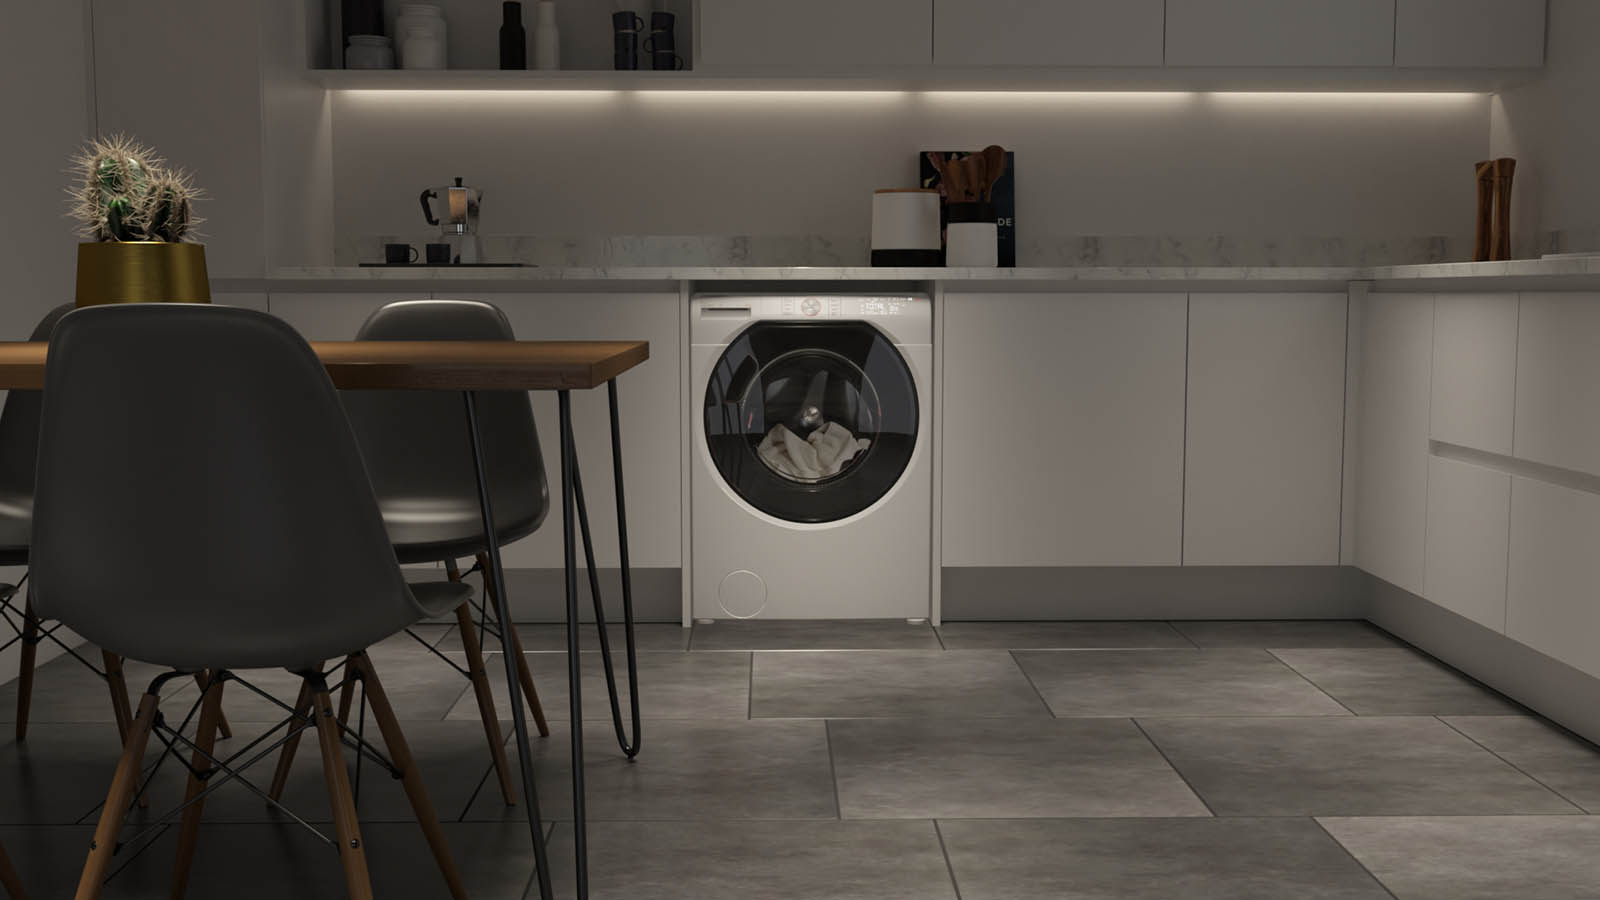 Hoover Stings CGI Animation TV Advert Washing Machine